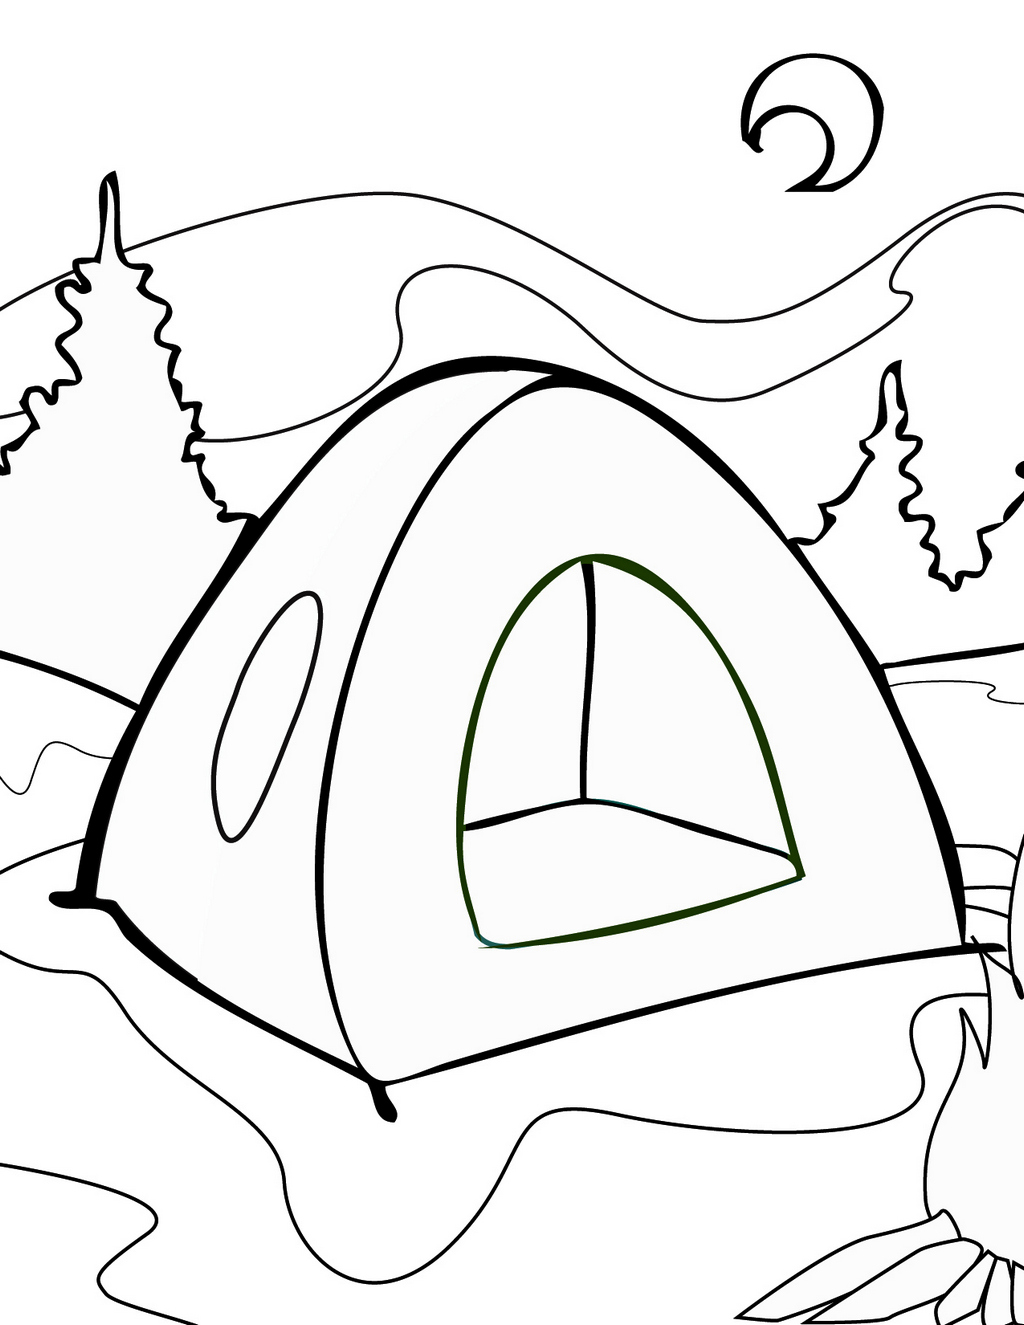 Tent Colouring Sheet For Kids 1